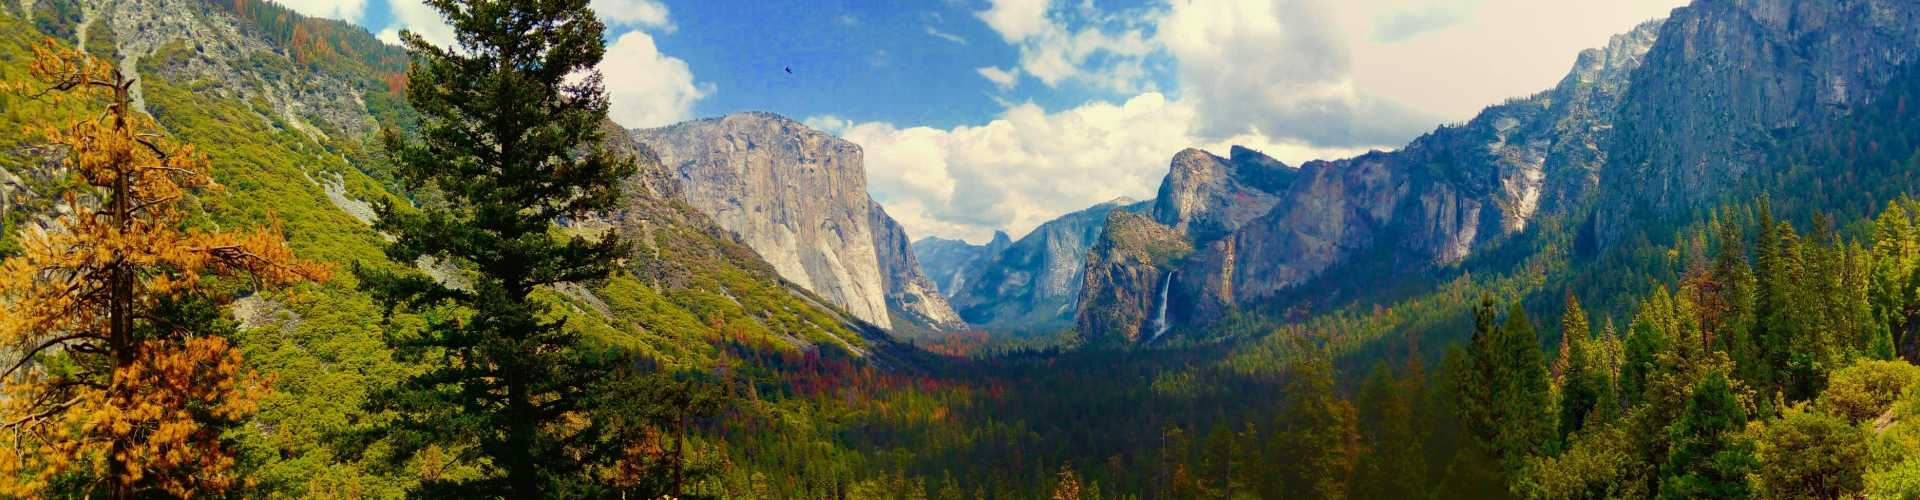 Estados Unidos - Cumes do Yosemite